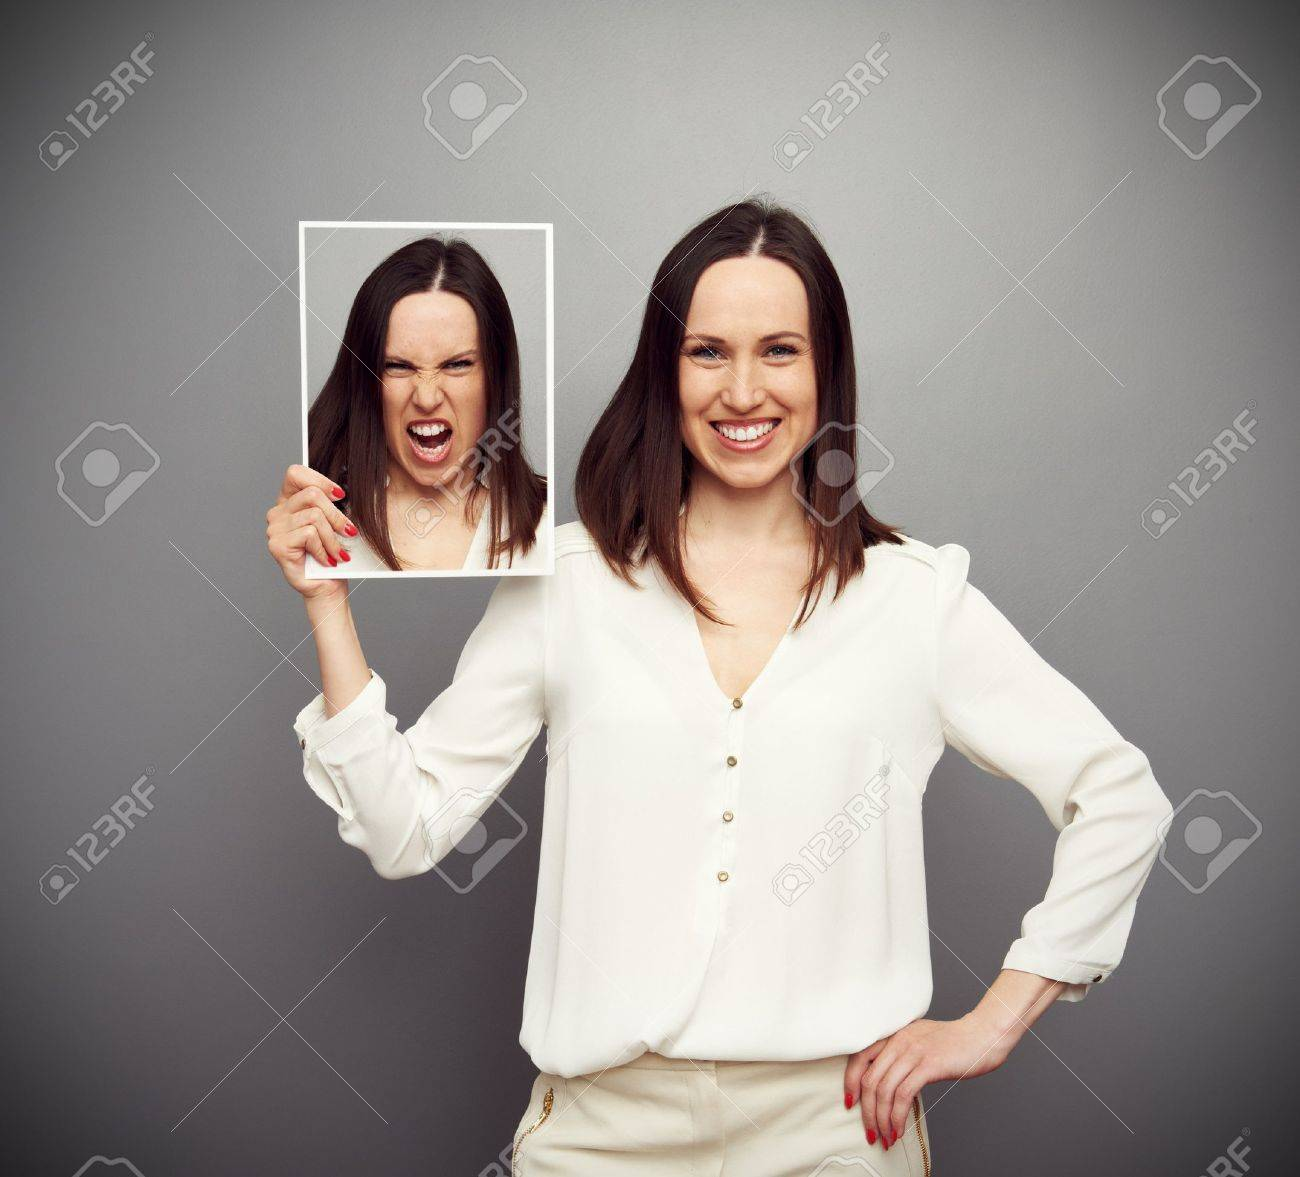 young smiley woman angry inside Stock Photo - 19062800